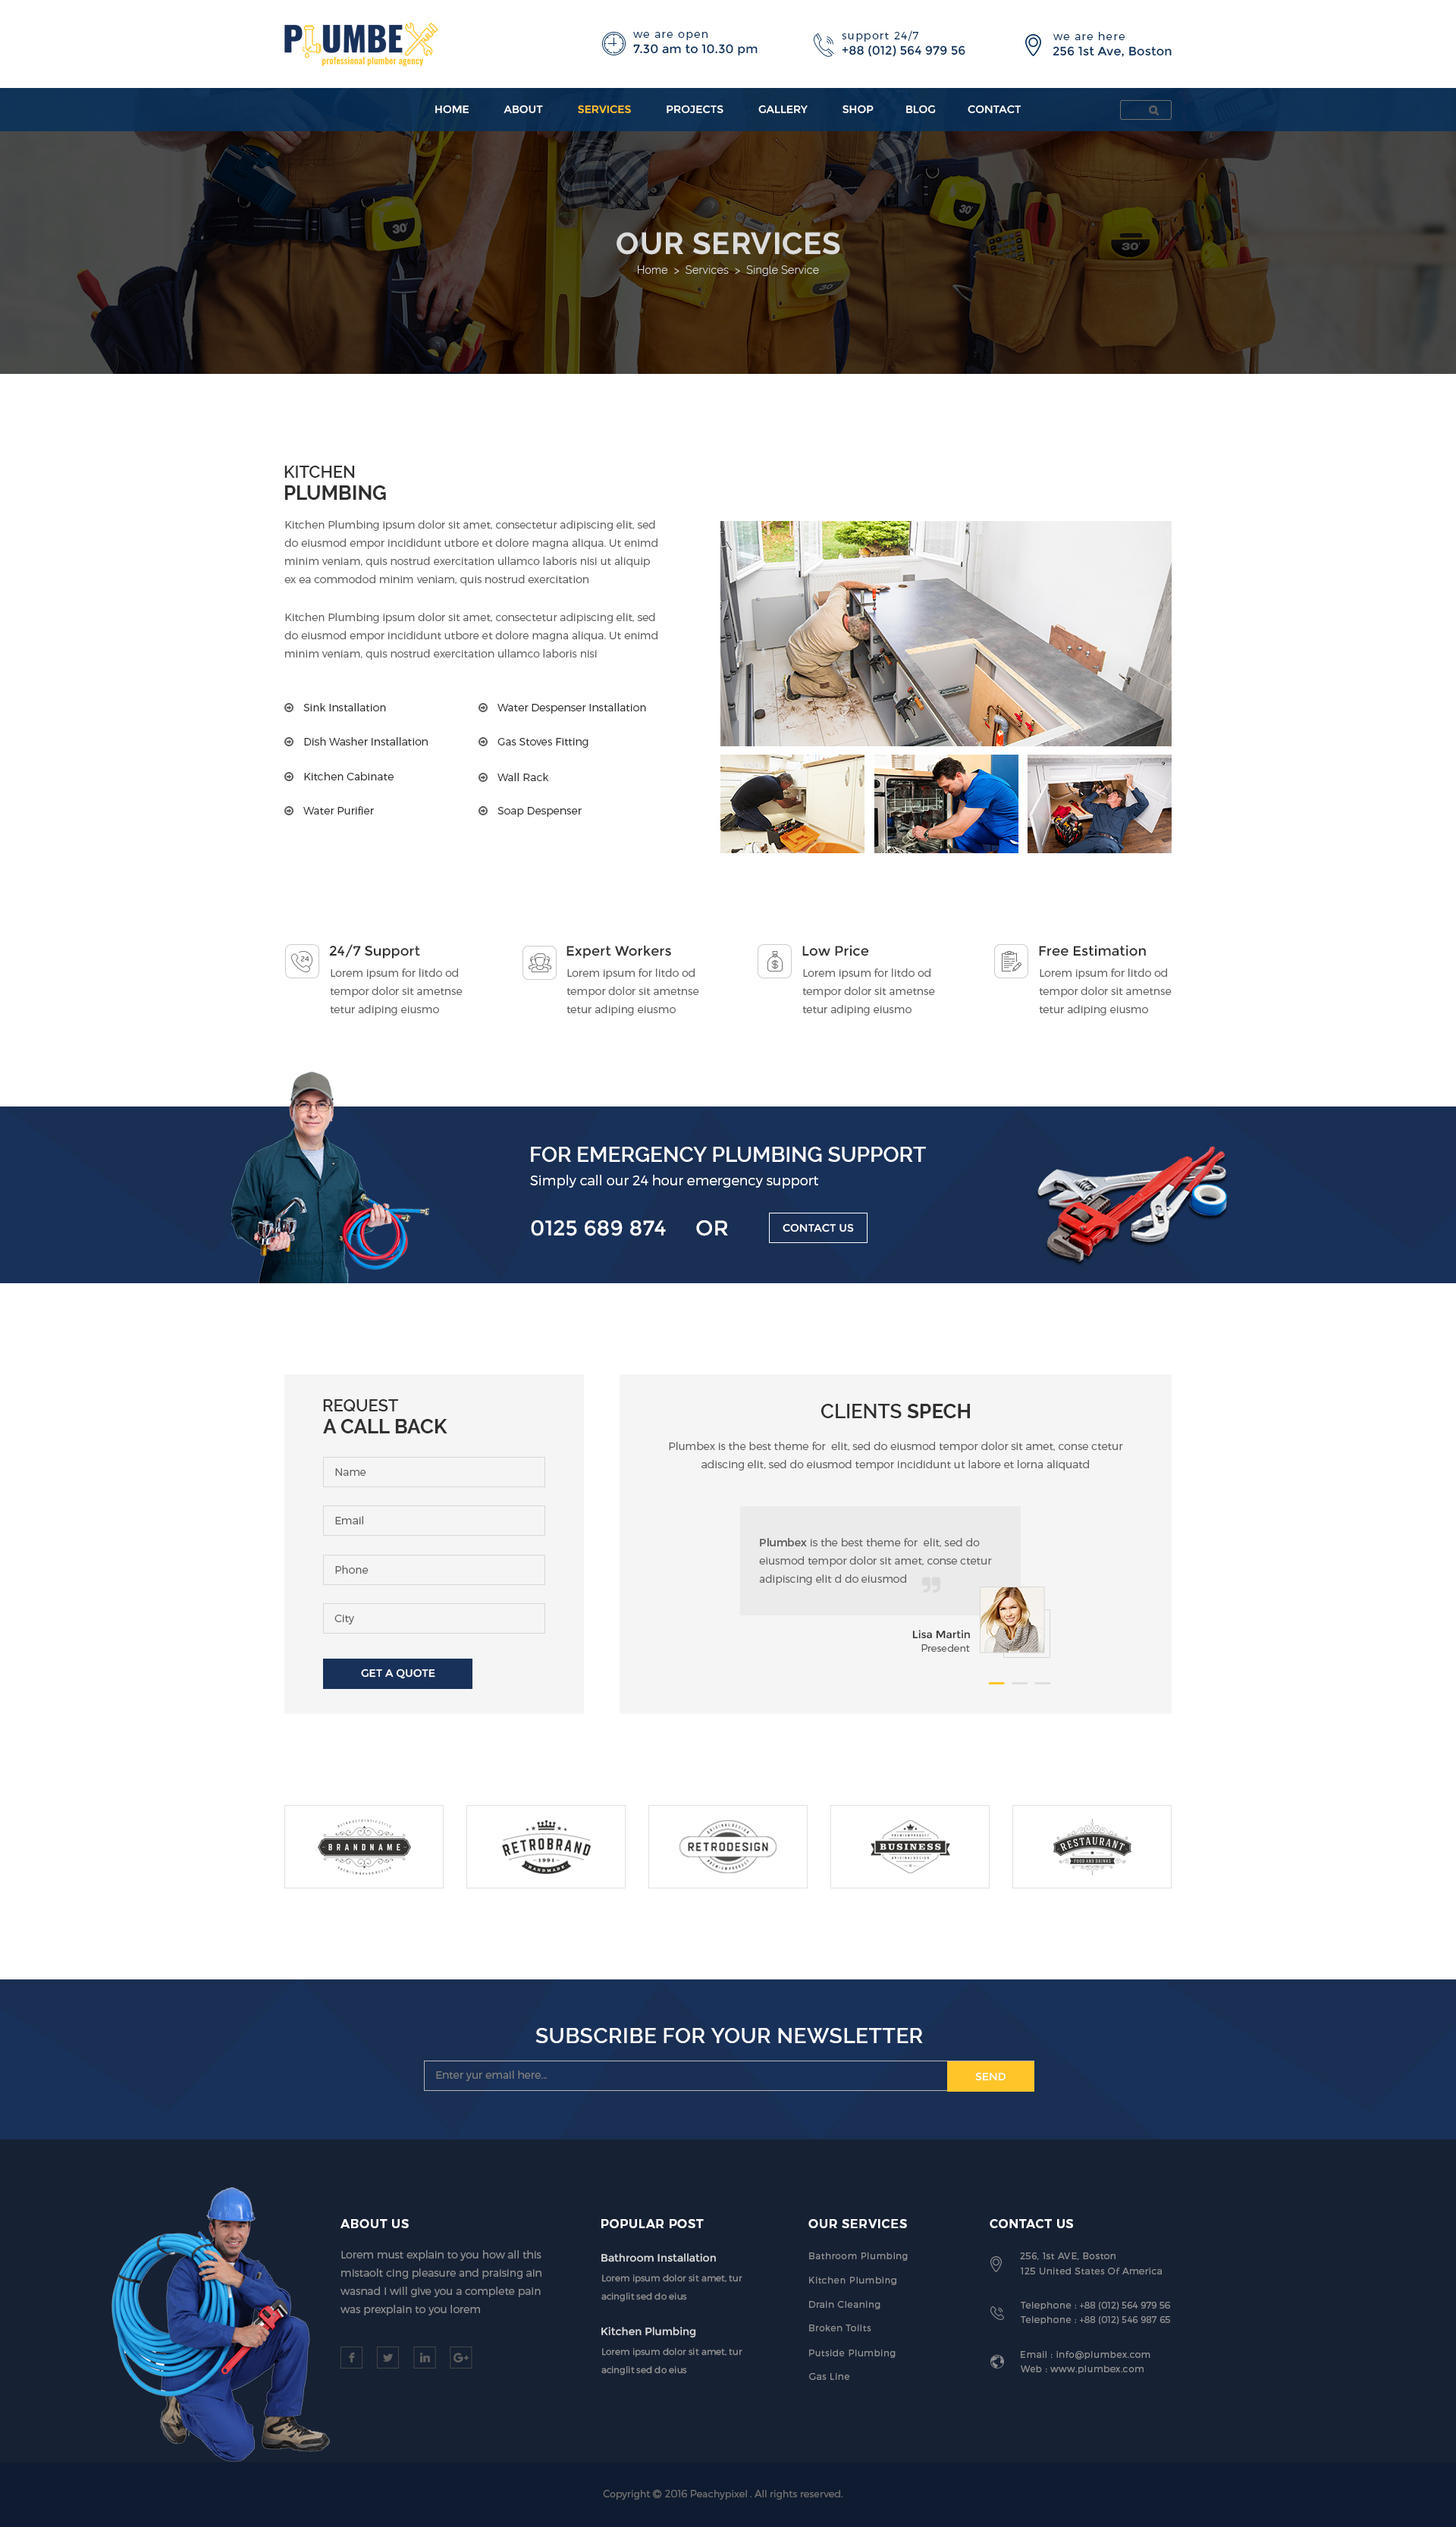 top result 50 elegant simple php page template image 2018 hzt6 2017